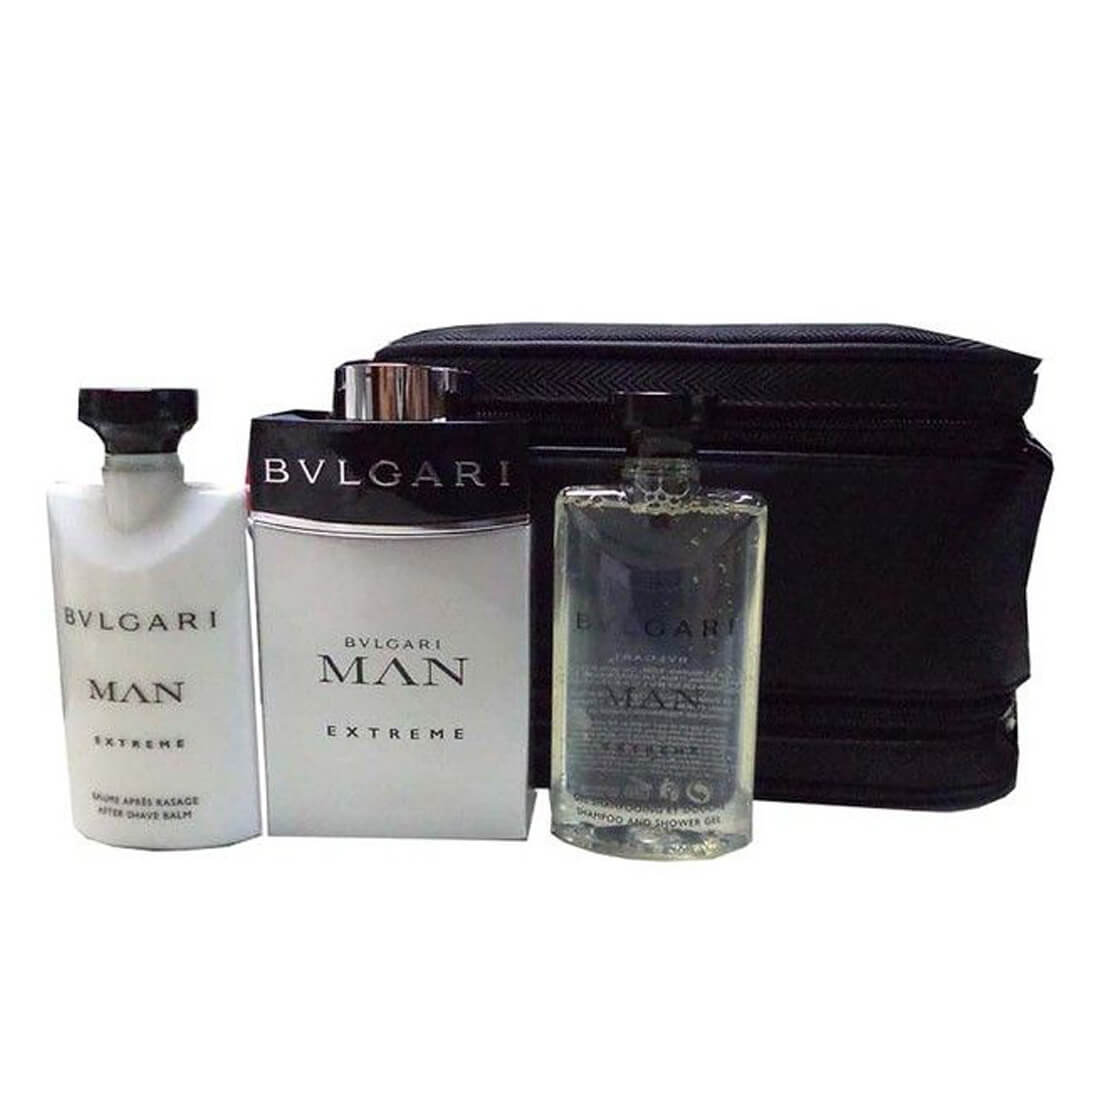 Bvlgari Man Extreme Perfume Gift Set For Men